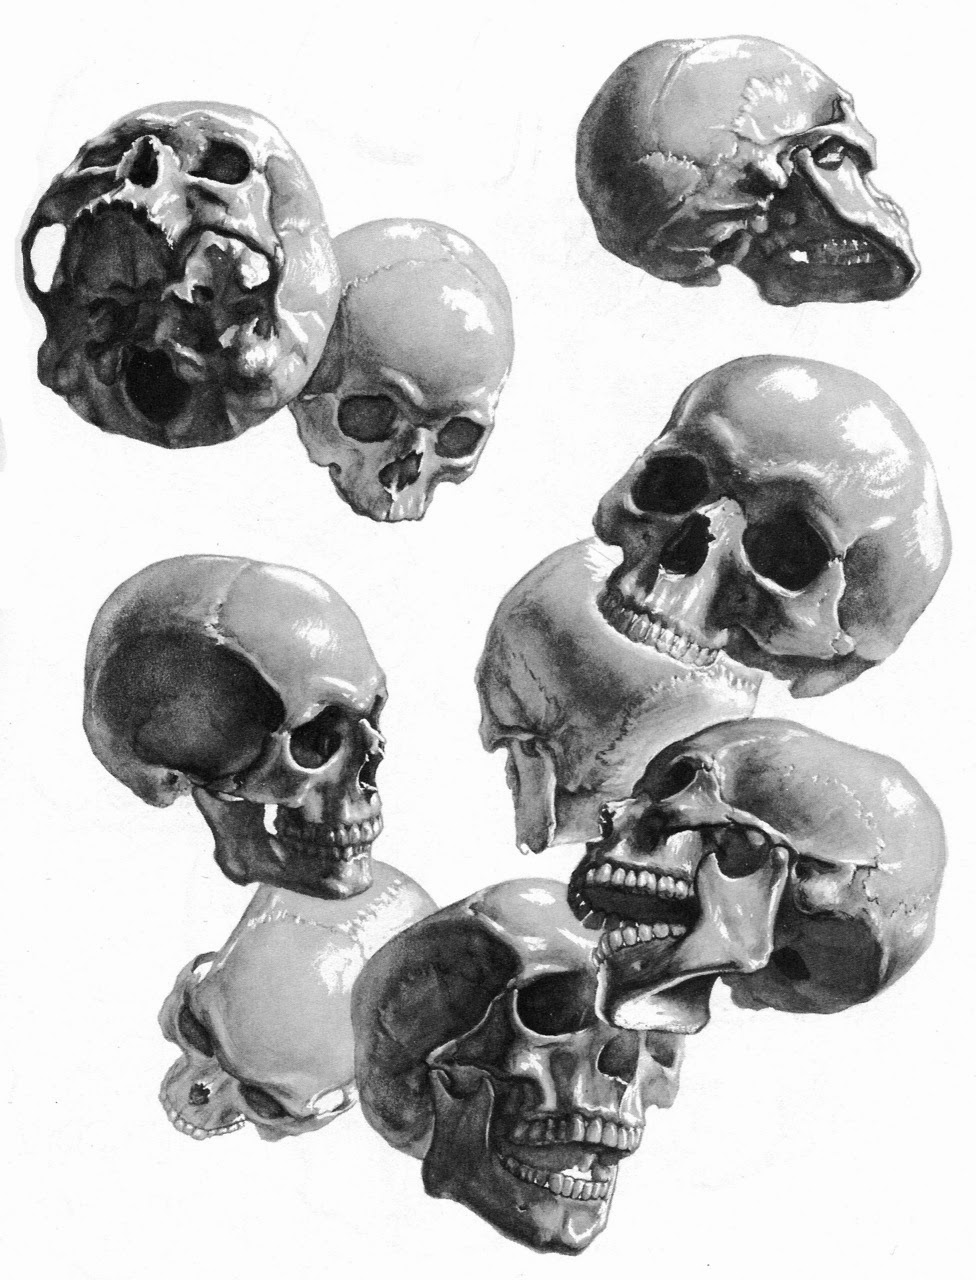 Drawn ssckull anatomy For Artist Stephen Human for